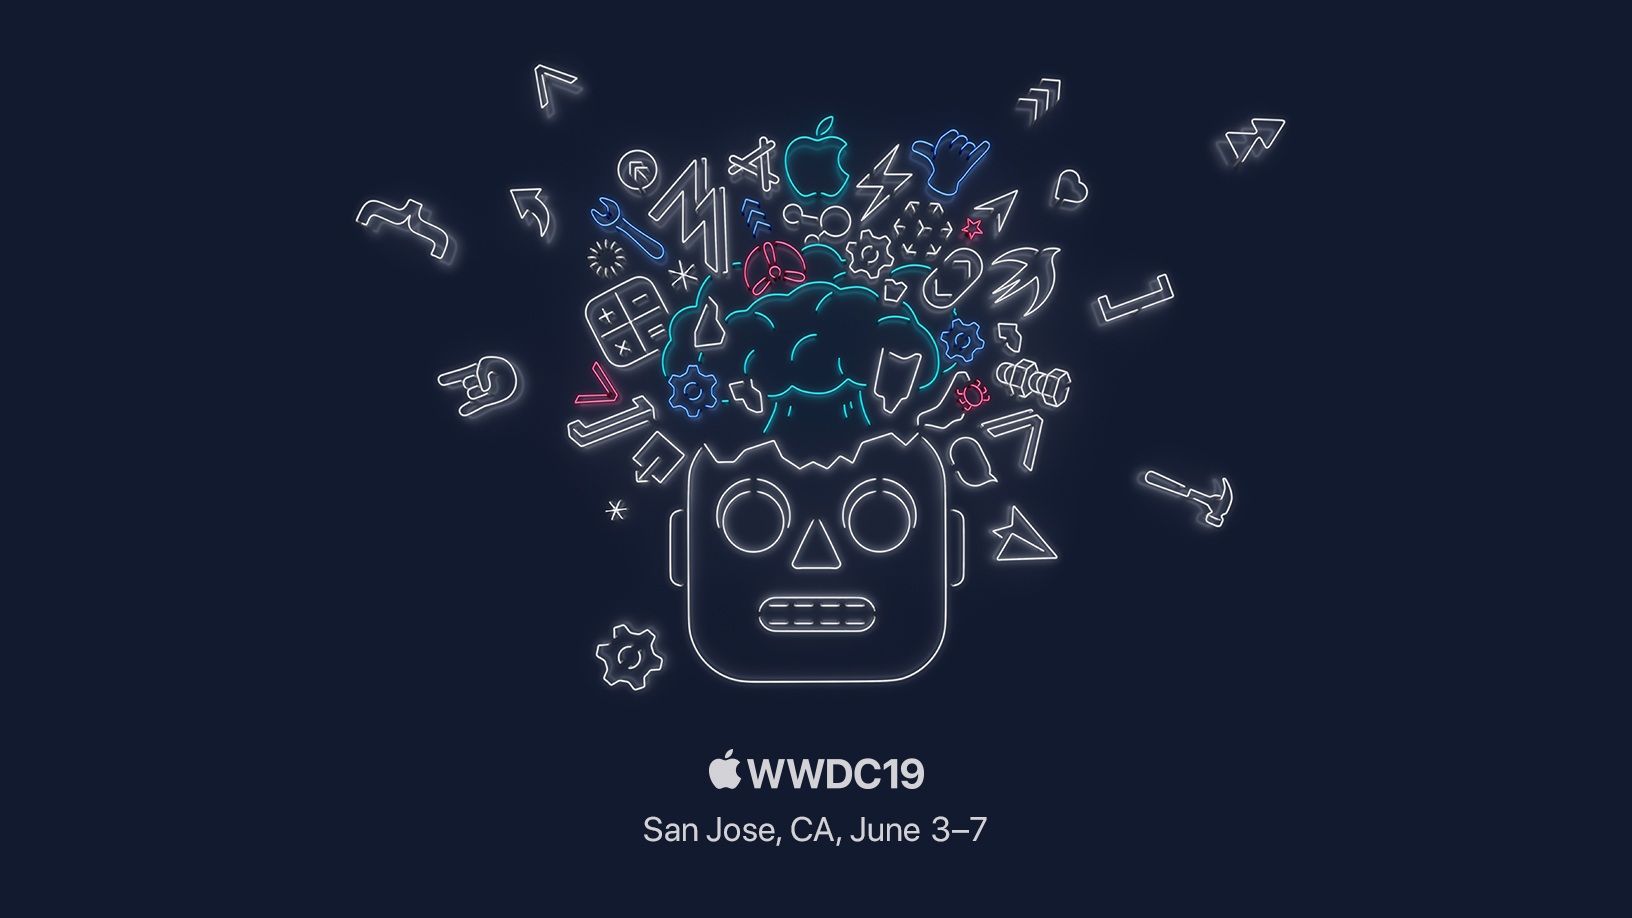 Apple updates WWDC app with customizable icon, new iMessage stickers, and more